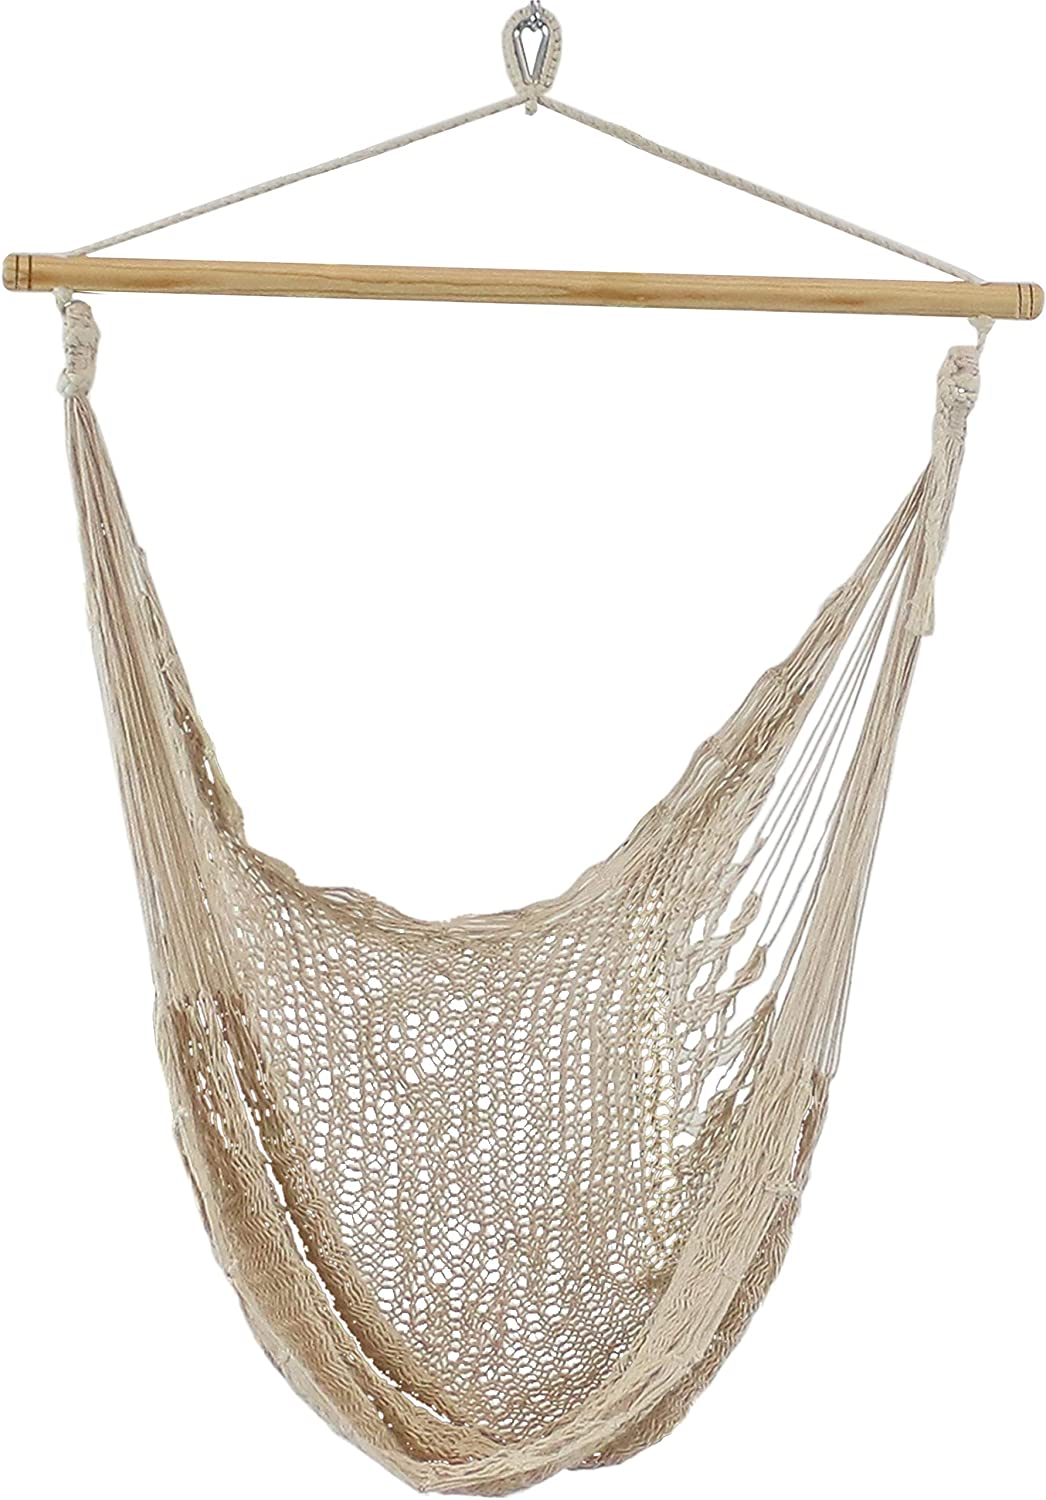 Sunnydaze Mayan Chair Hammock - Extra Large 30 Inch Wide x 50 Inch Deep Seat - Natural Colored